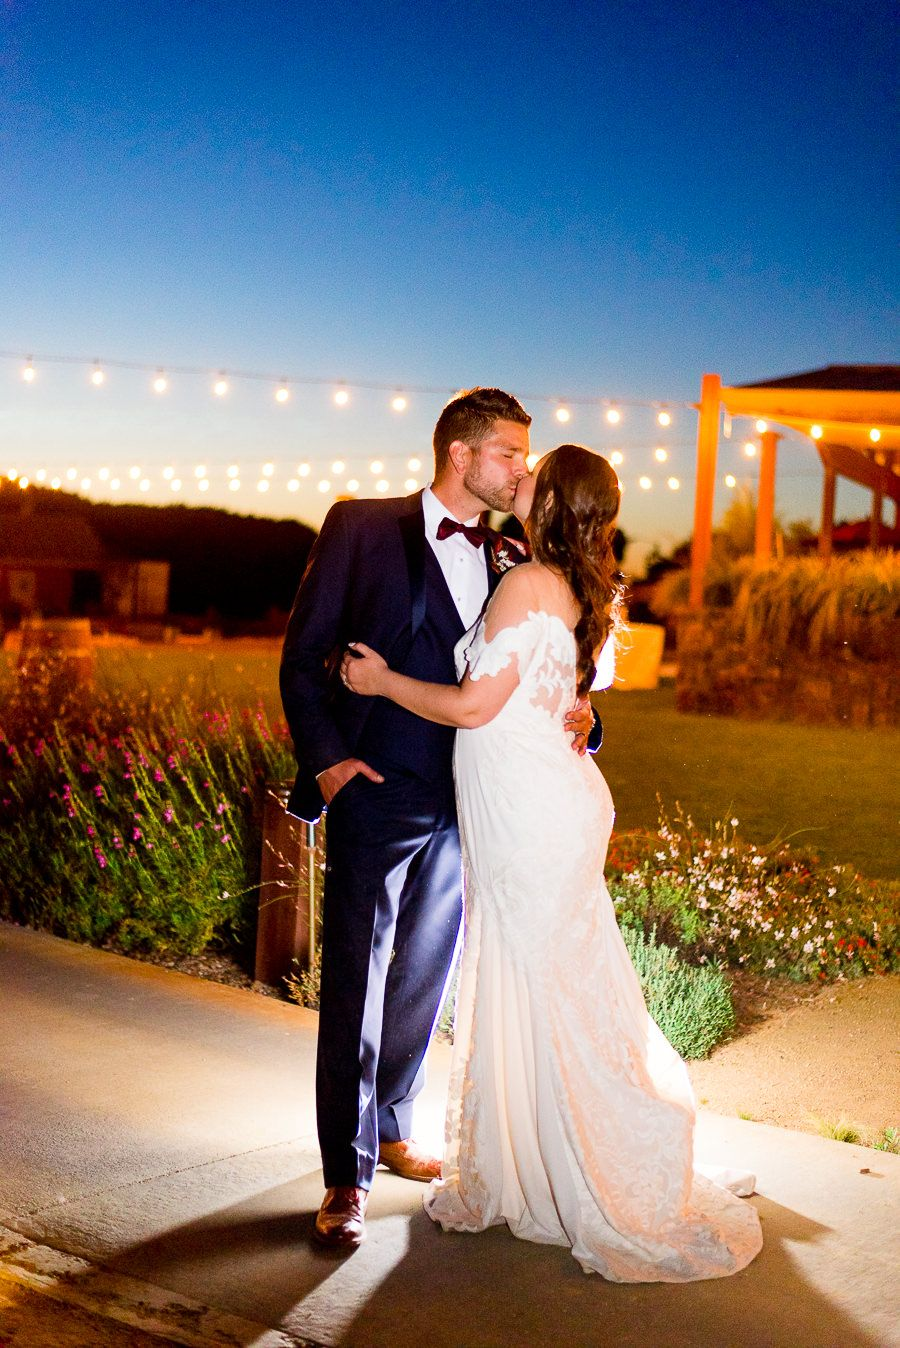 bride and groom kiss in front of string lights and dark blue sky at Pennyroyal Farm wedding